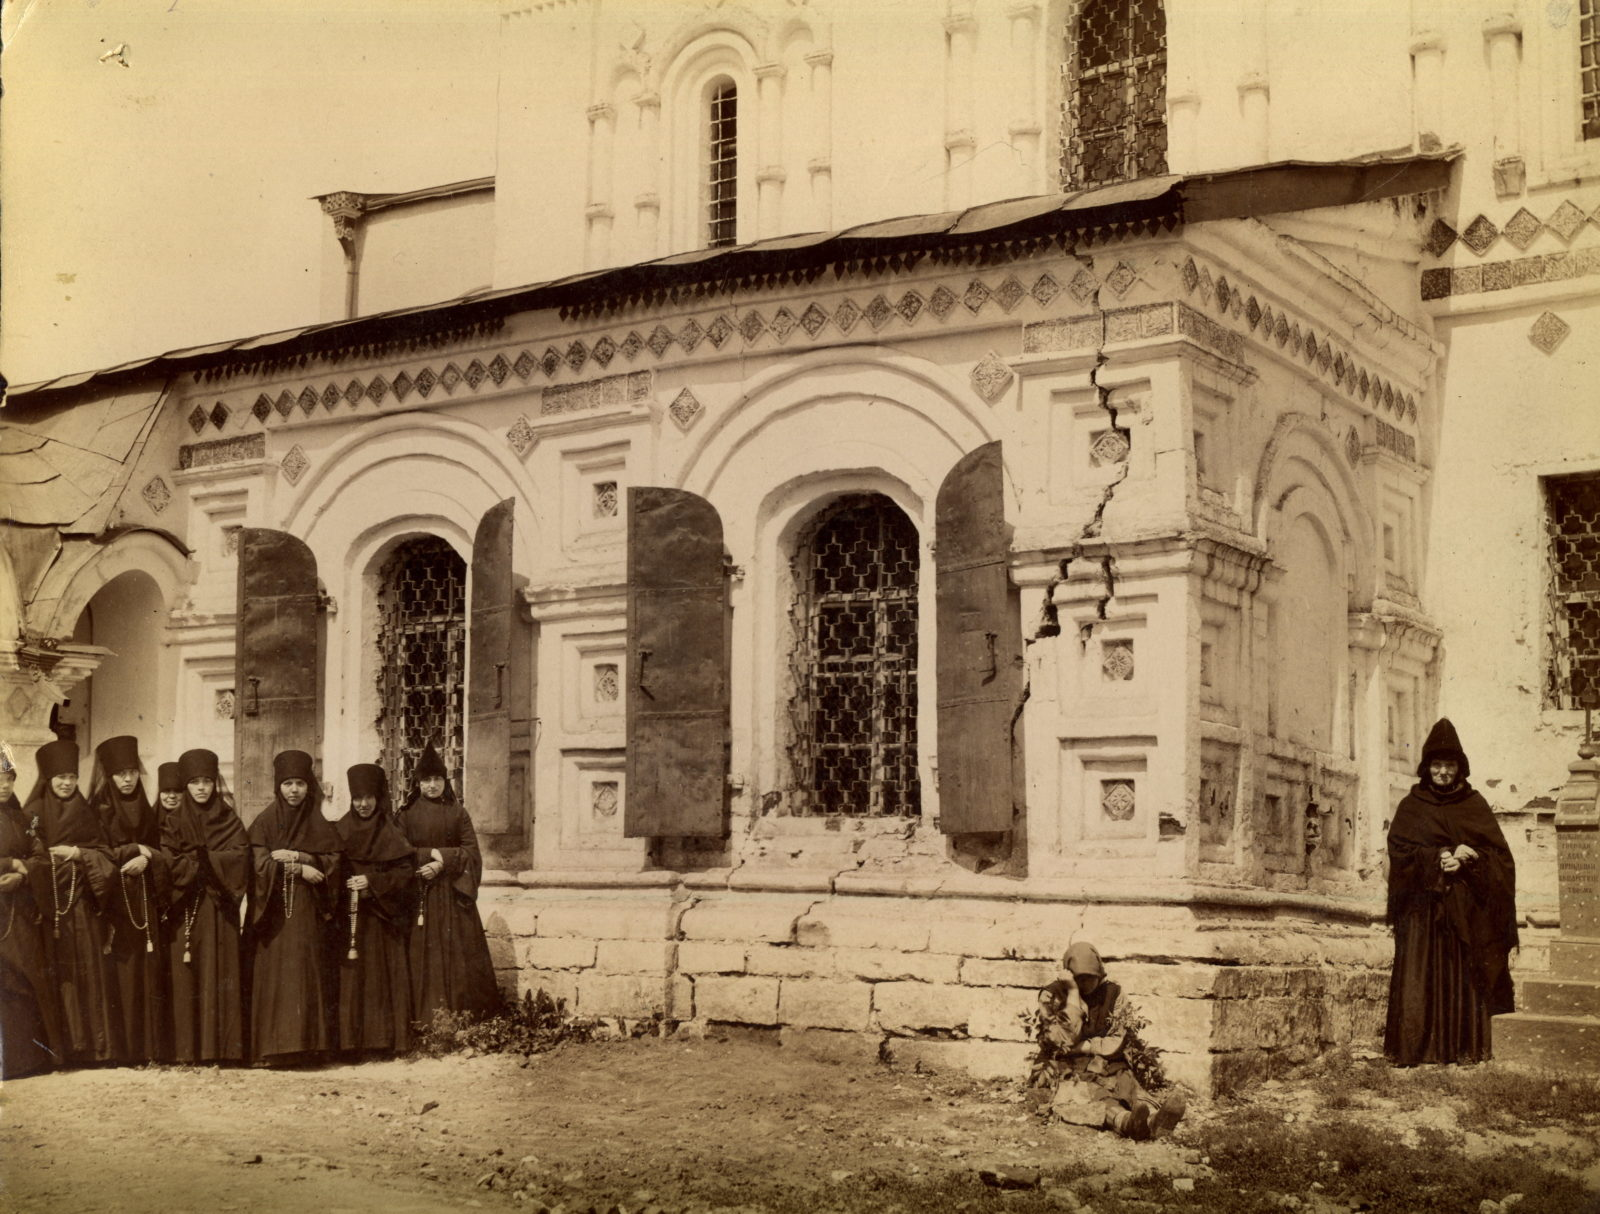 Murom, Nuns at the walls of the Trinity Cathedral. 1900s